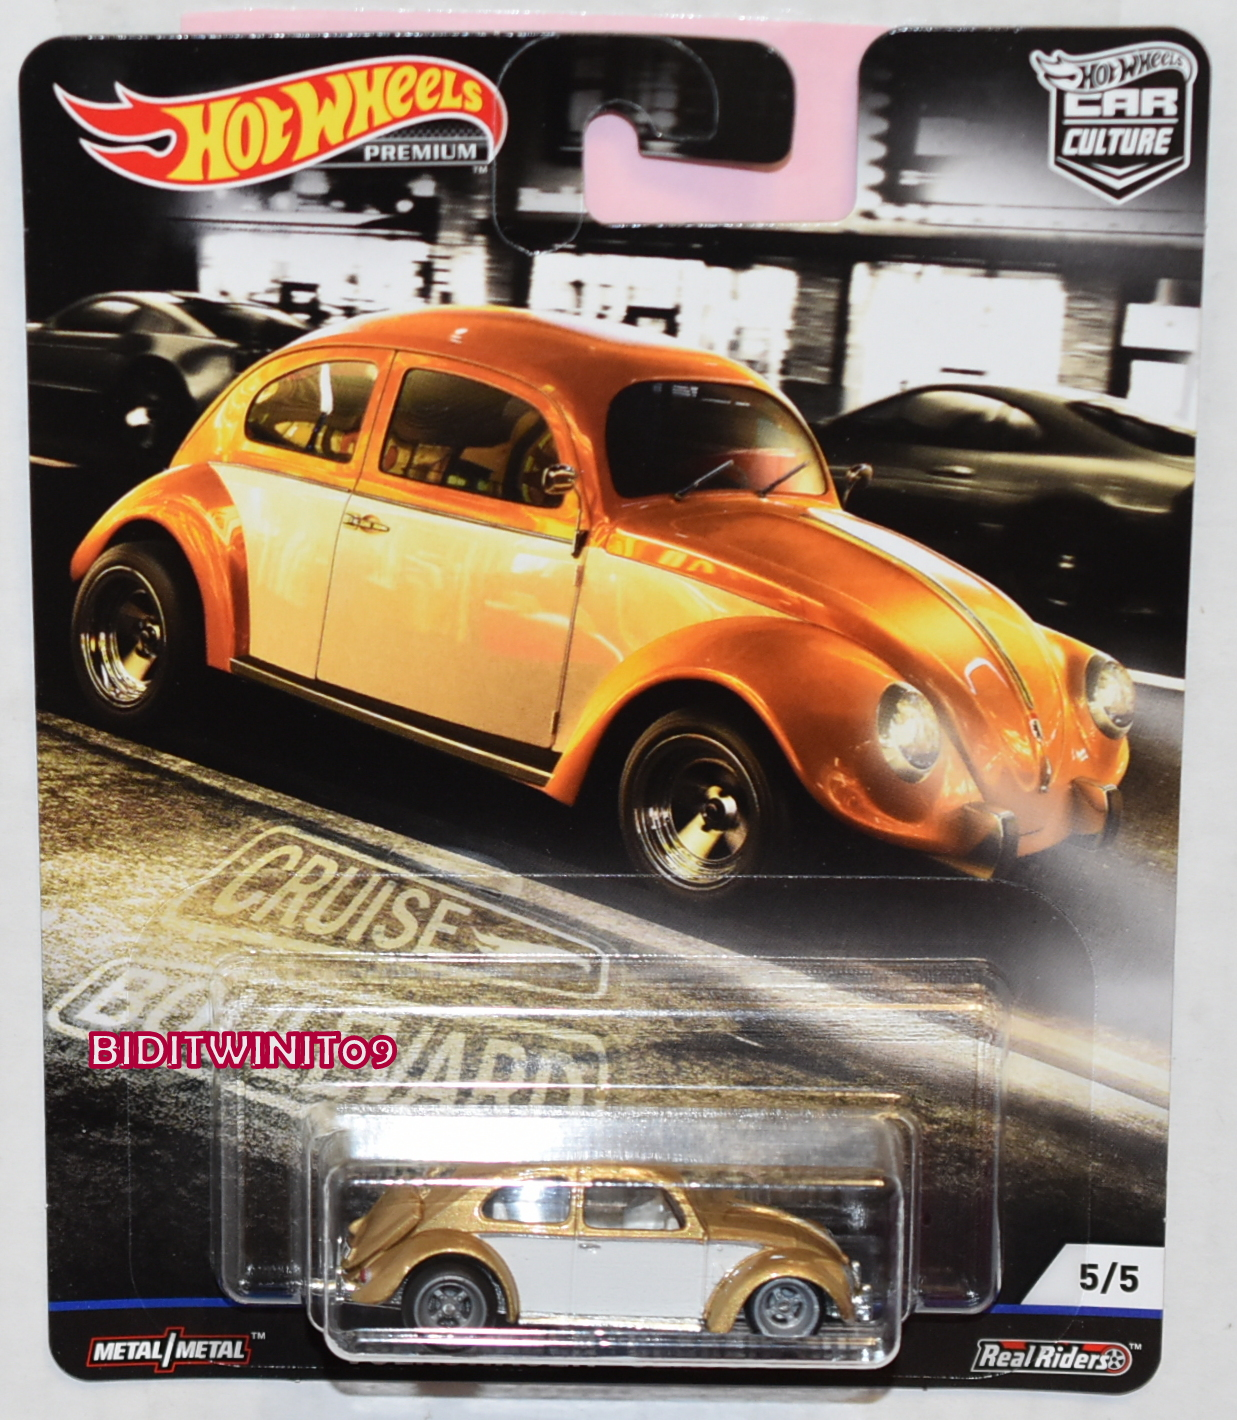 HOT WHEELS 2019 CAR CULTURE BOULEVARD CASE M VOLKSWAGEN CLASSIC BUG